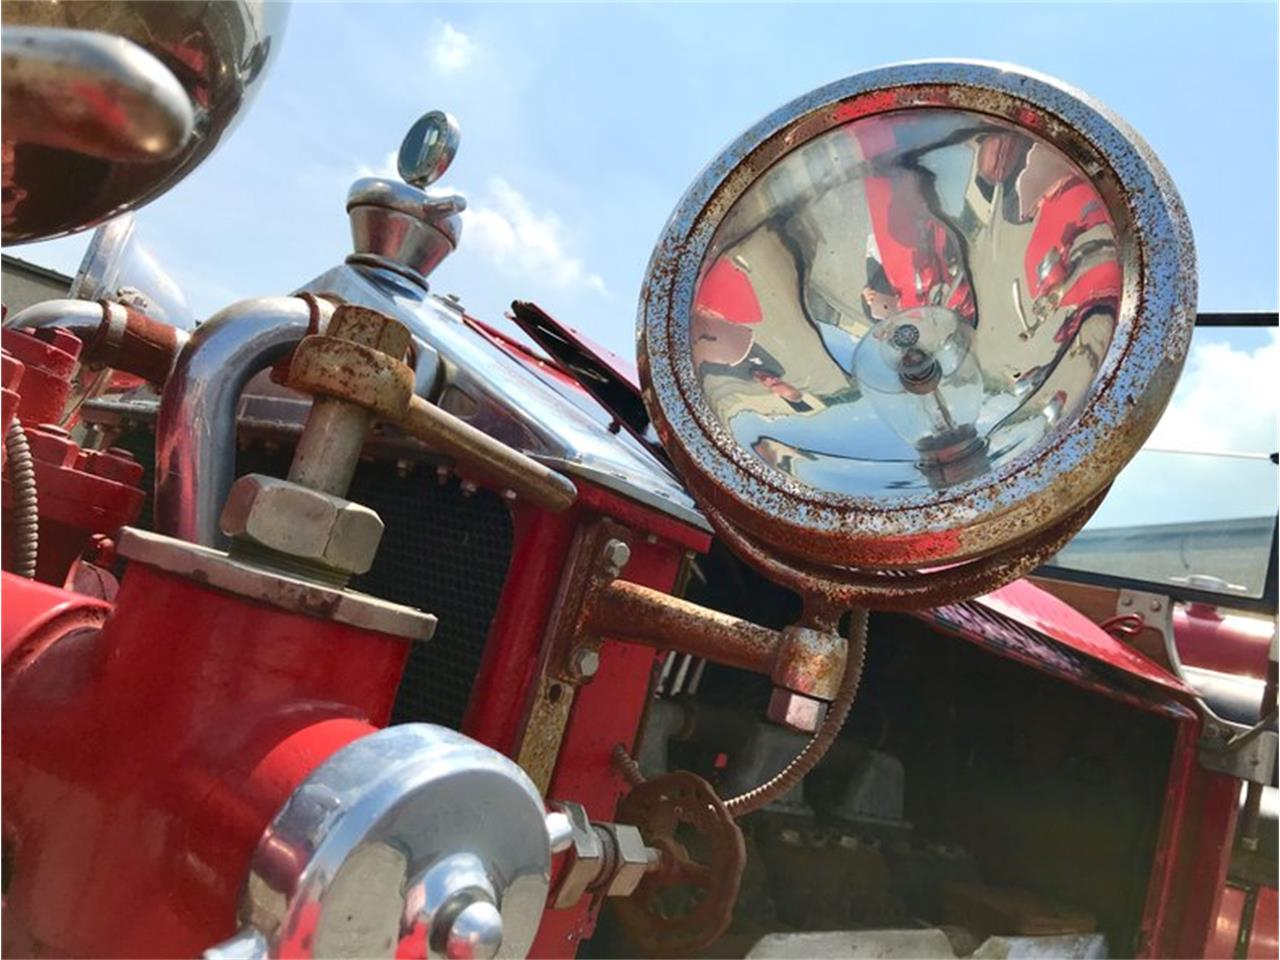 1920 Ahrens-Fox Fire Truck for sale in Morgantown, PA – photo 27